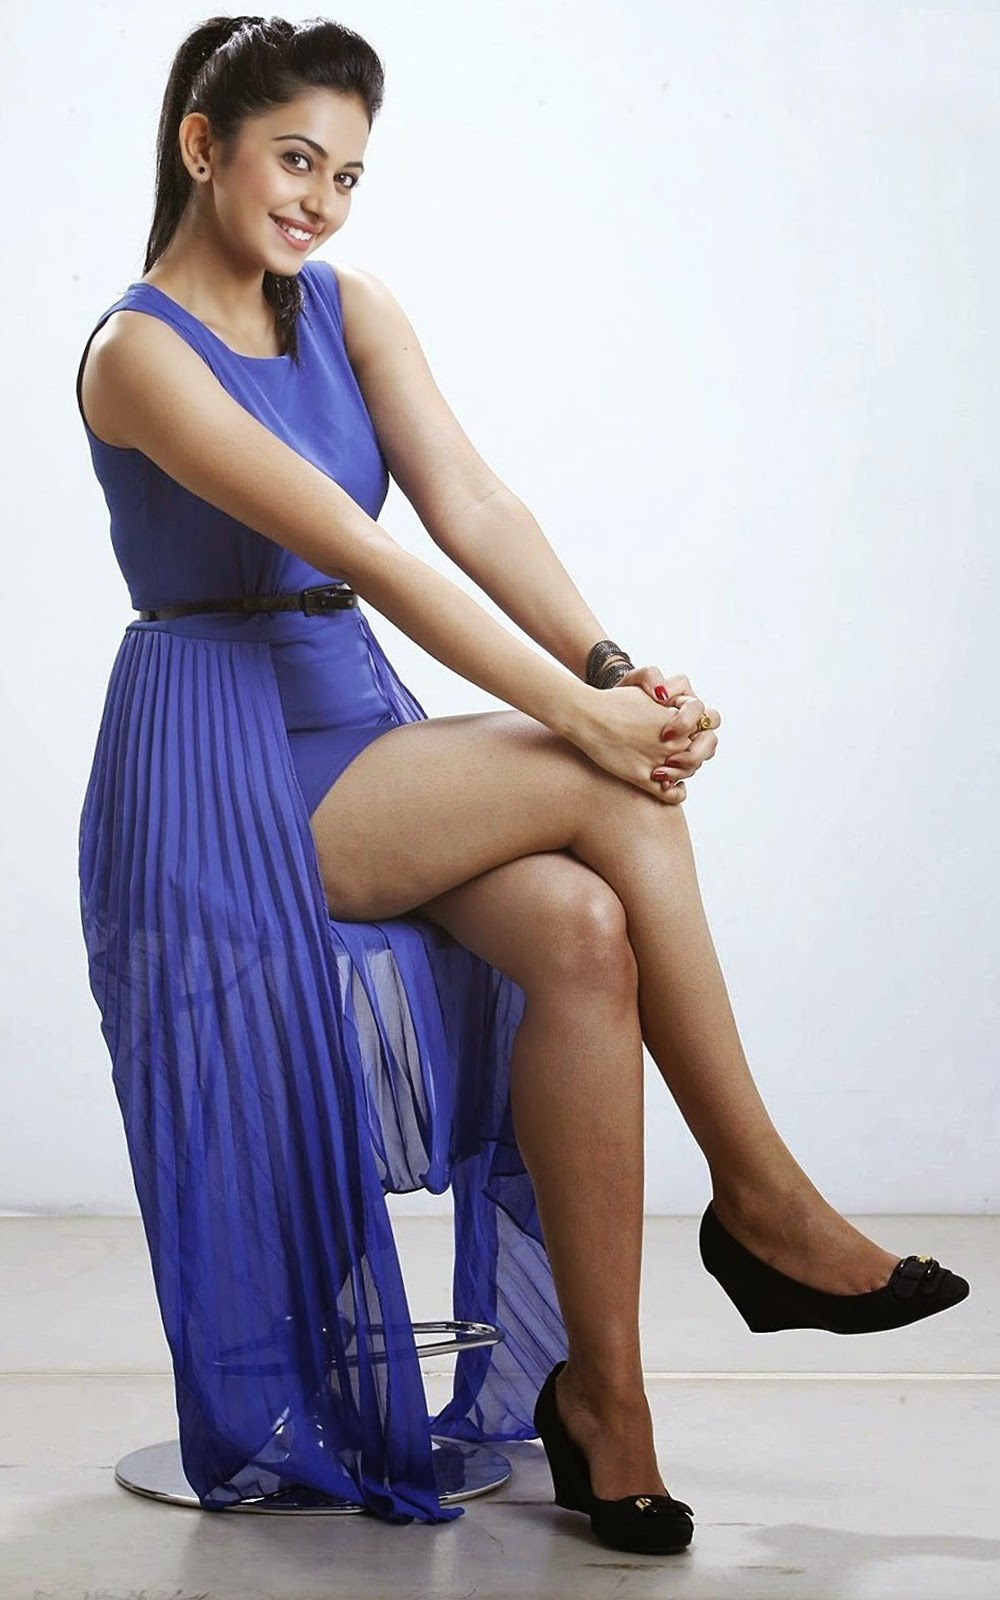 Rakul Preet In Hot Blue Top  Watch Continuously  Sexy -8758